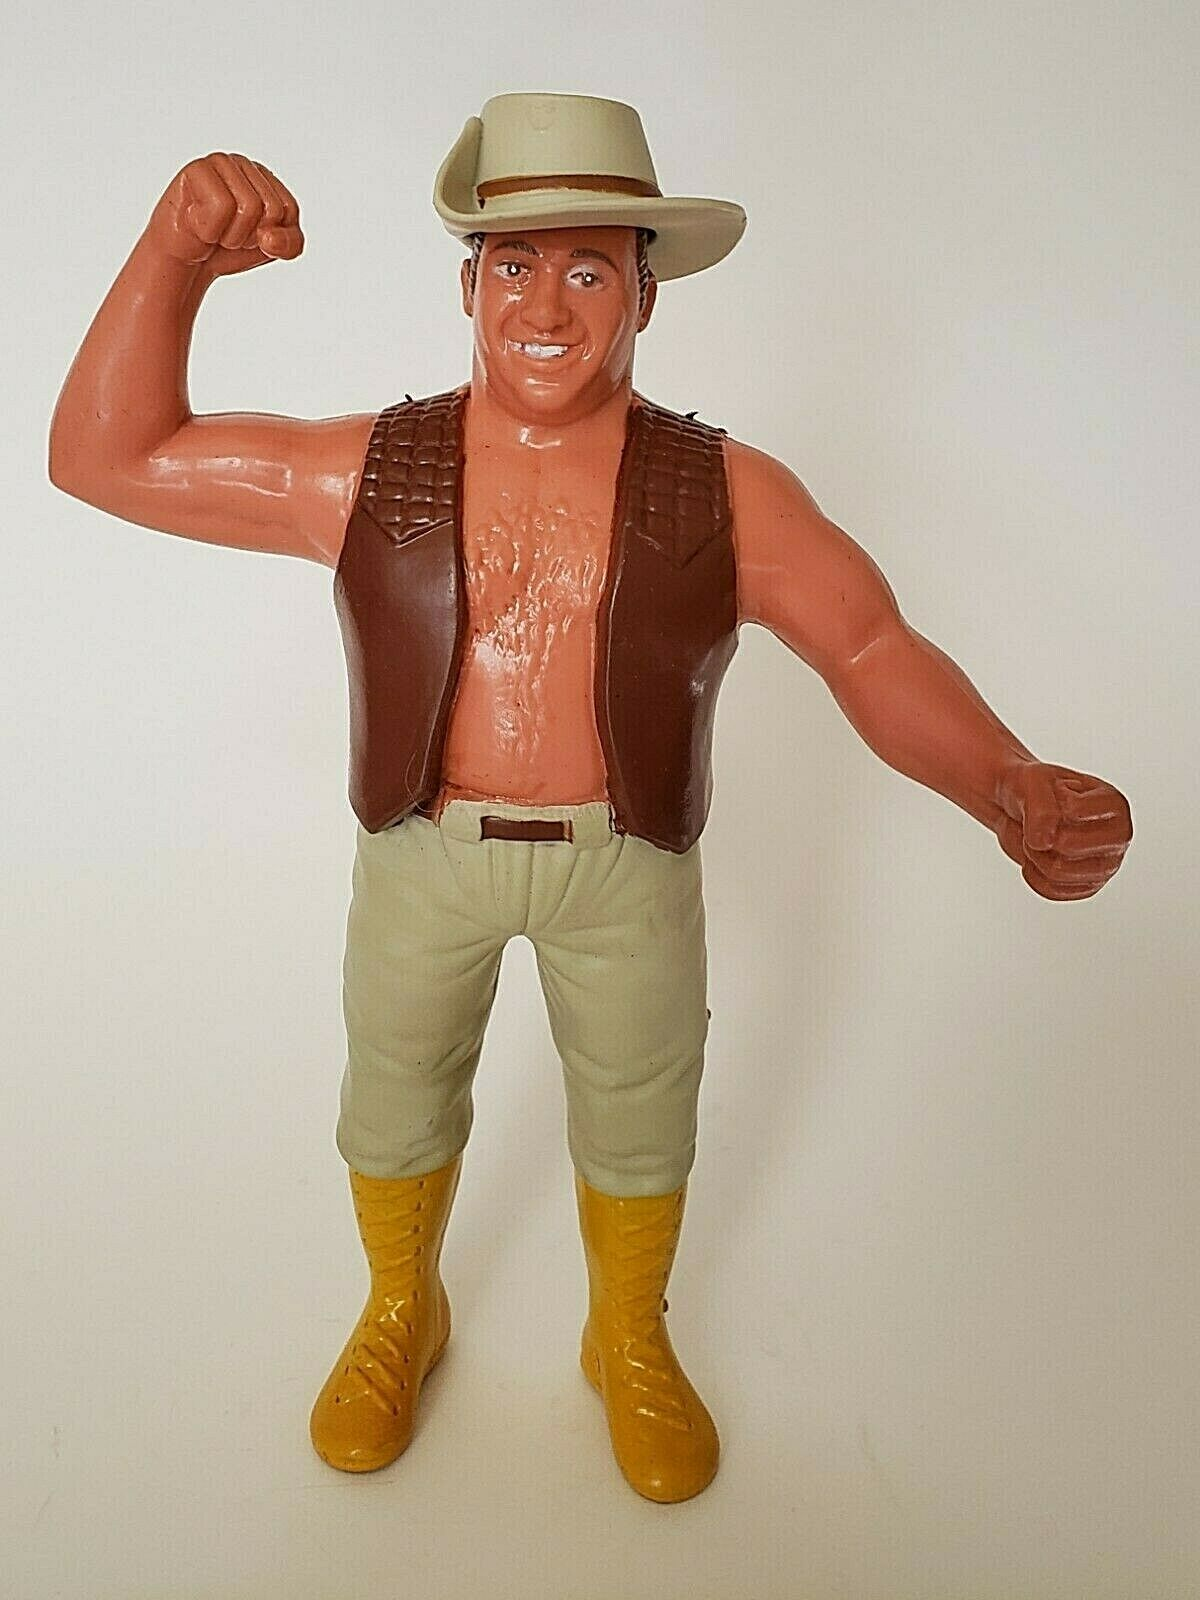 1984 Outback Jack Series 4 LJN WWF   WWE Wrestling Action Figure